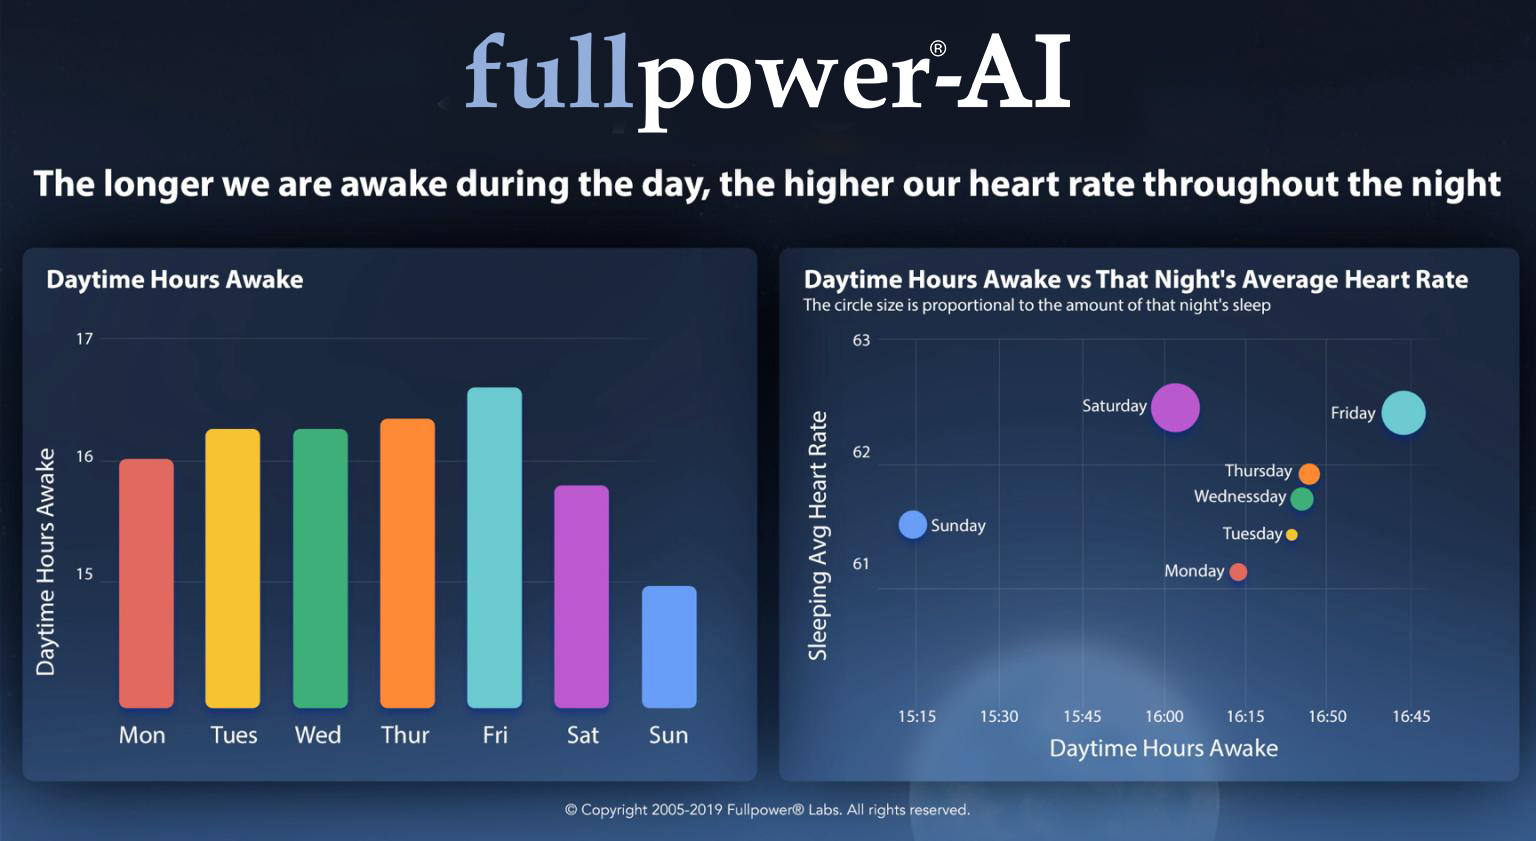 the-longer-we-are-awake-during-the-day-the-higher-our-heart-rate-throughout-the-night